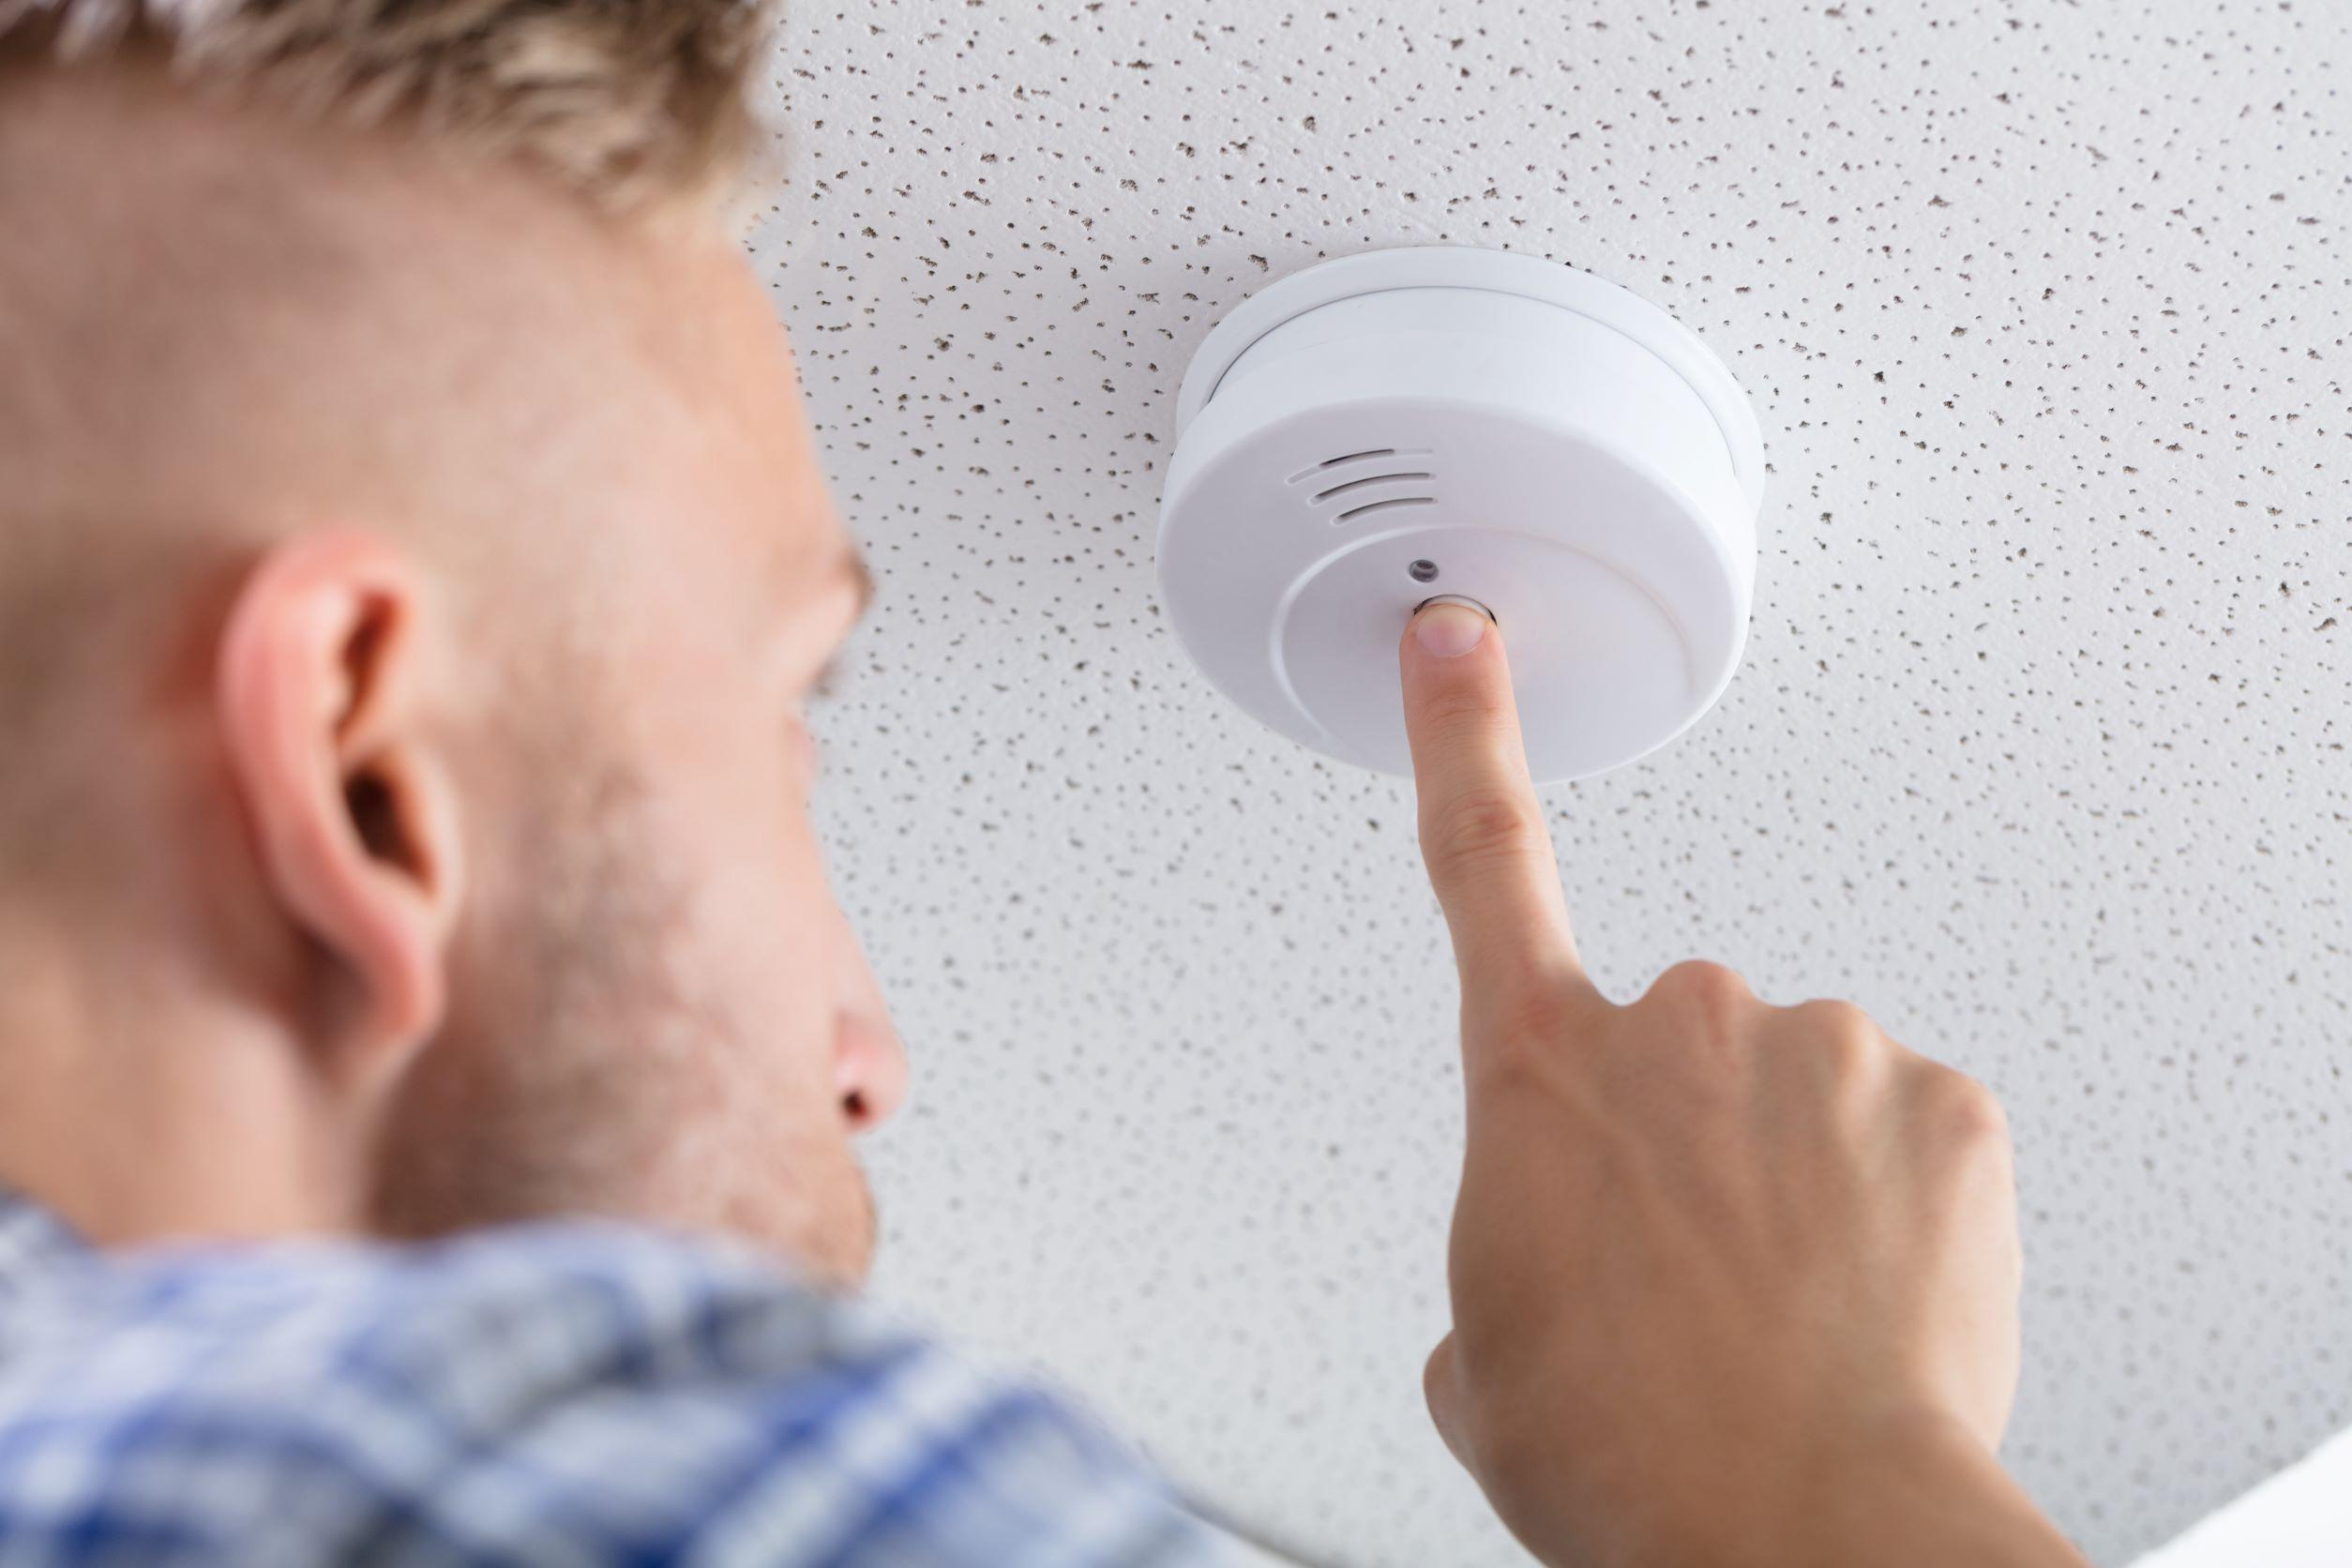 Check smoke detector as part of 12-point cold weather checklist